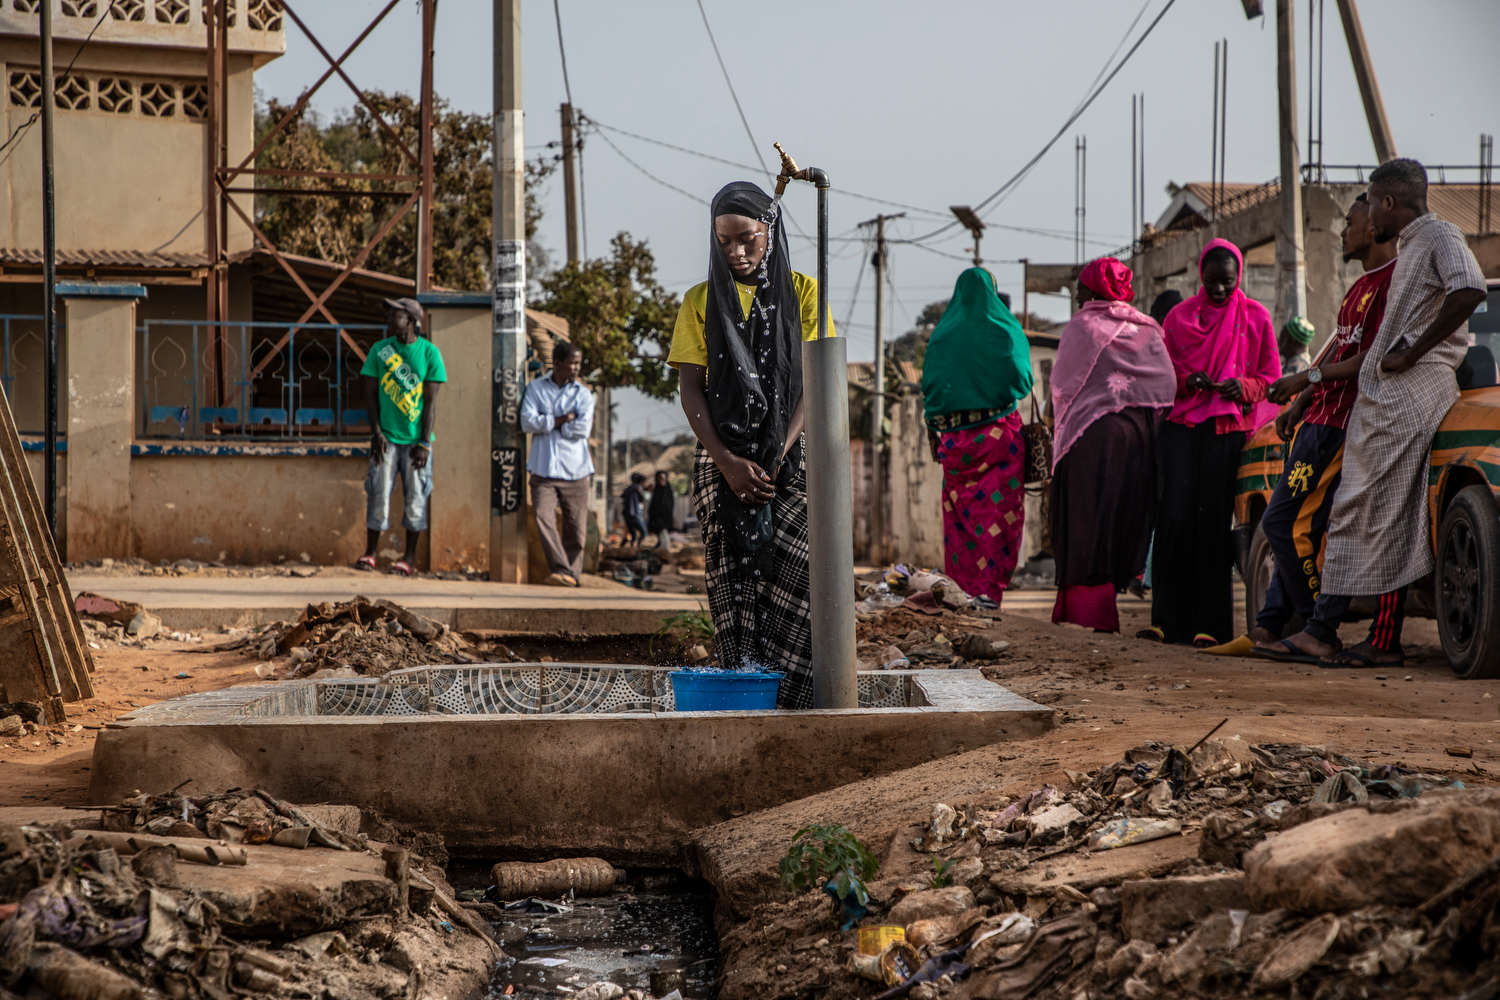 Isatou Jammeh collects water from a community tap that sits directly on an open sewage drain.